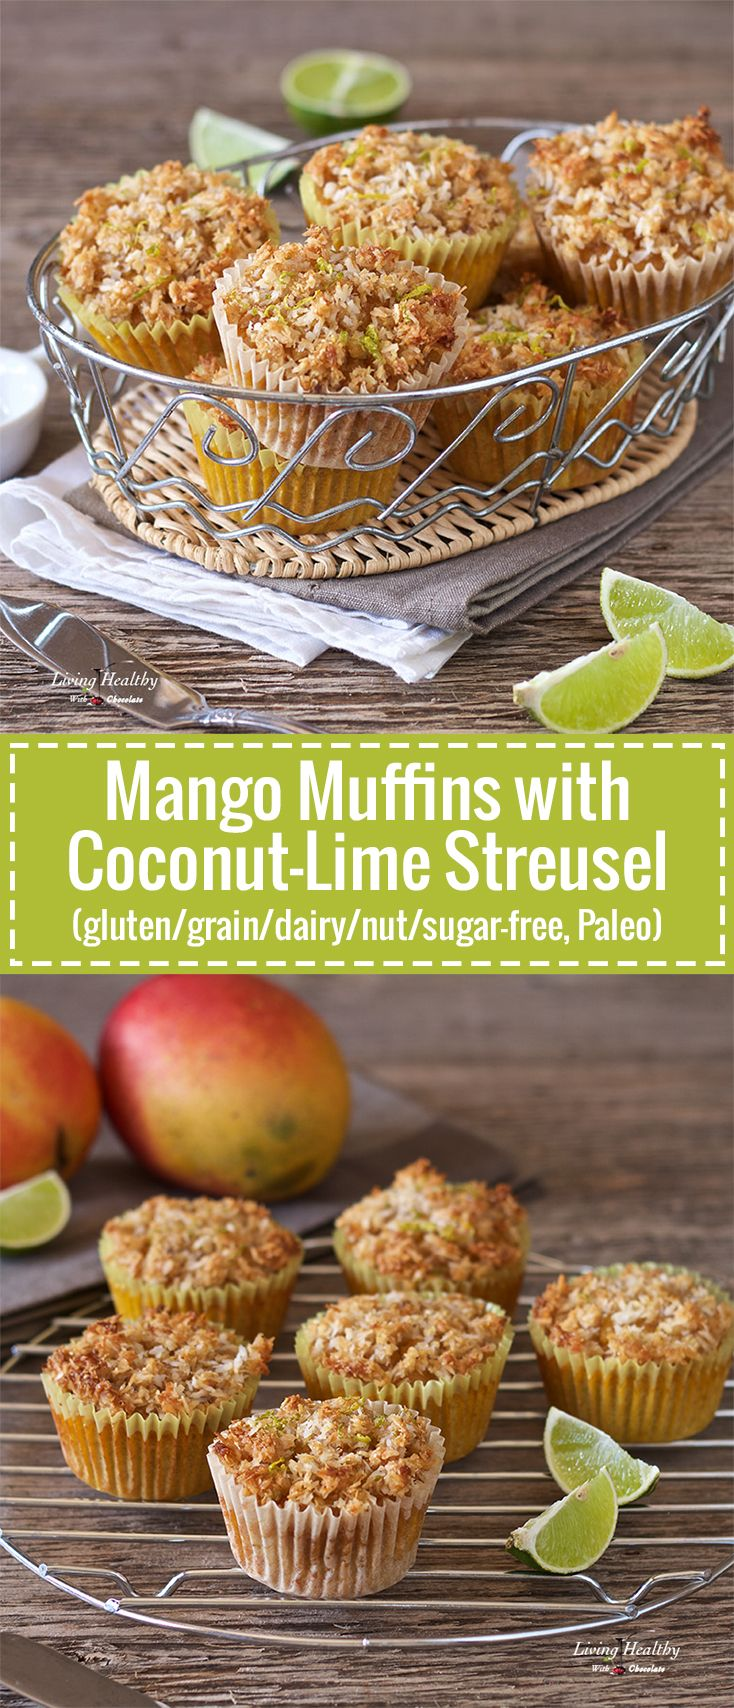 Super moist Mango Muffins with Coconut-Lime Streusel Made with coconut flour and fresh mangoes  (Paleo, gluten/grain/dairy/nut/sugar-free) By #LivingHealthyWithChocolate